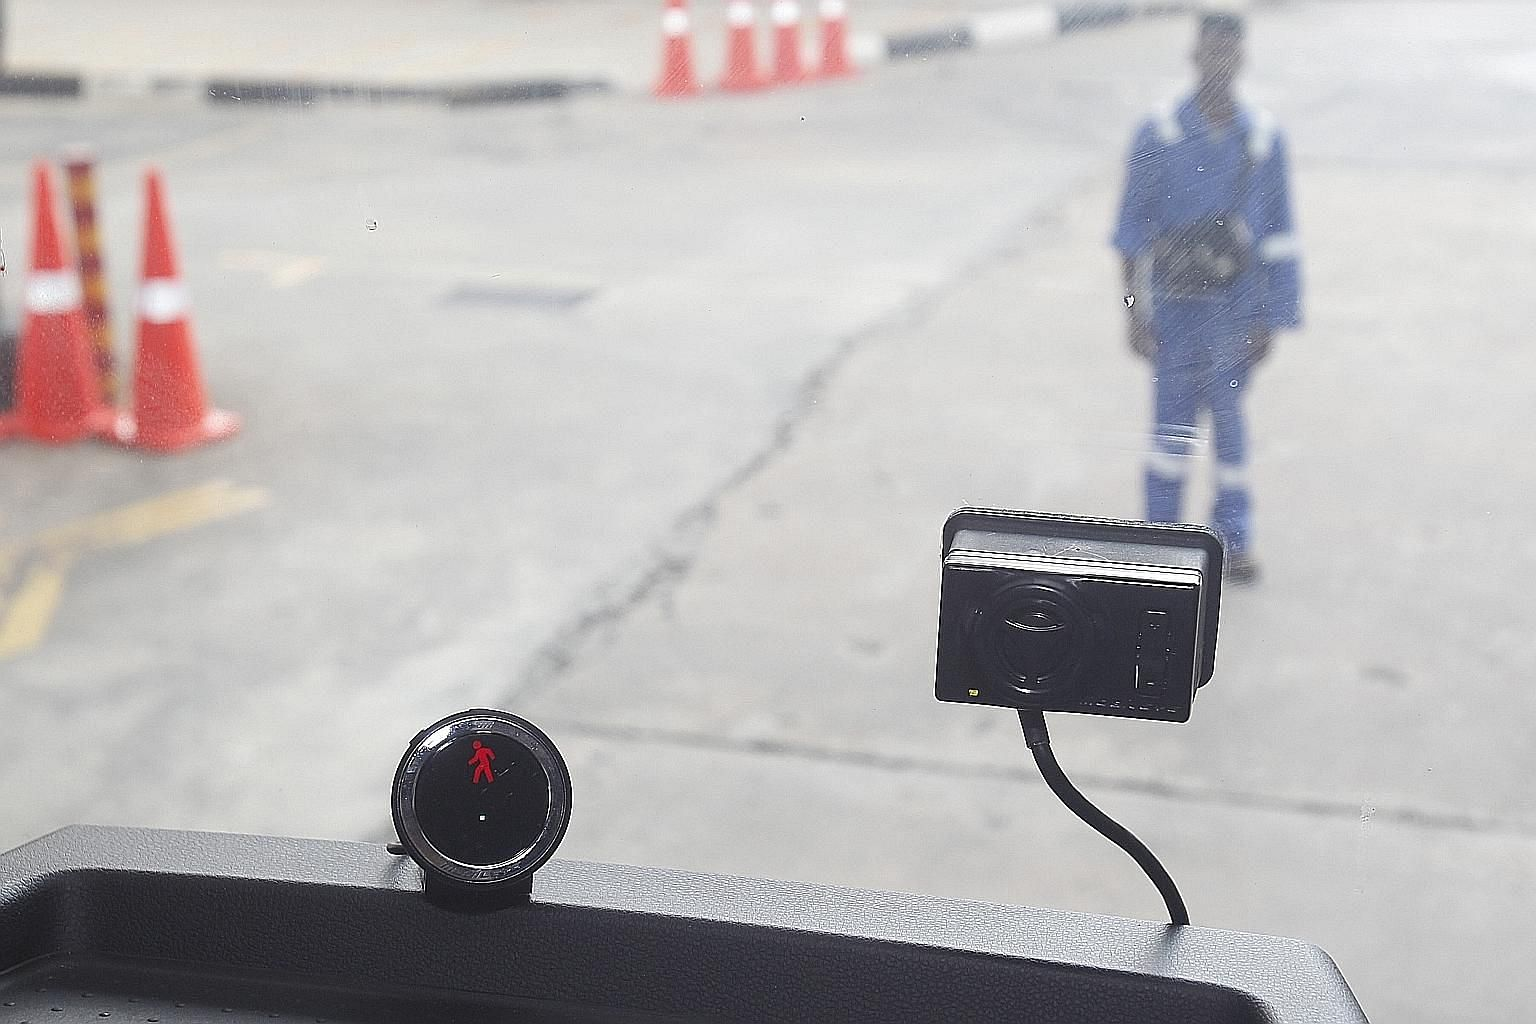 SBS Transit's 3,000 buses are fitted with the Mobileye driver assistance system, which warns of impending collisions. The accident rate for SBS Transit buses has since dropped by 20 per cent.